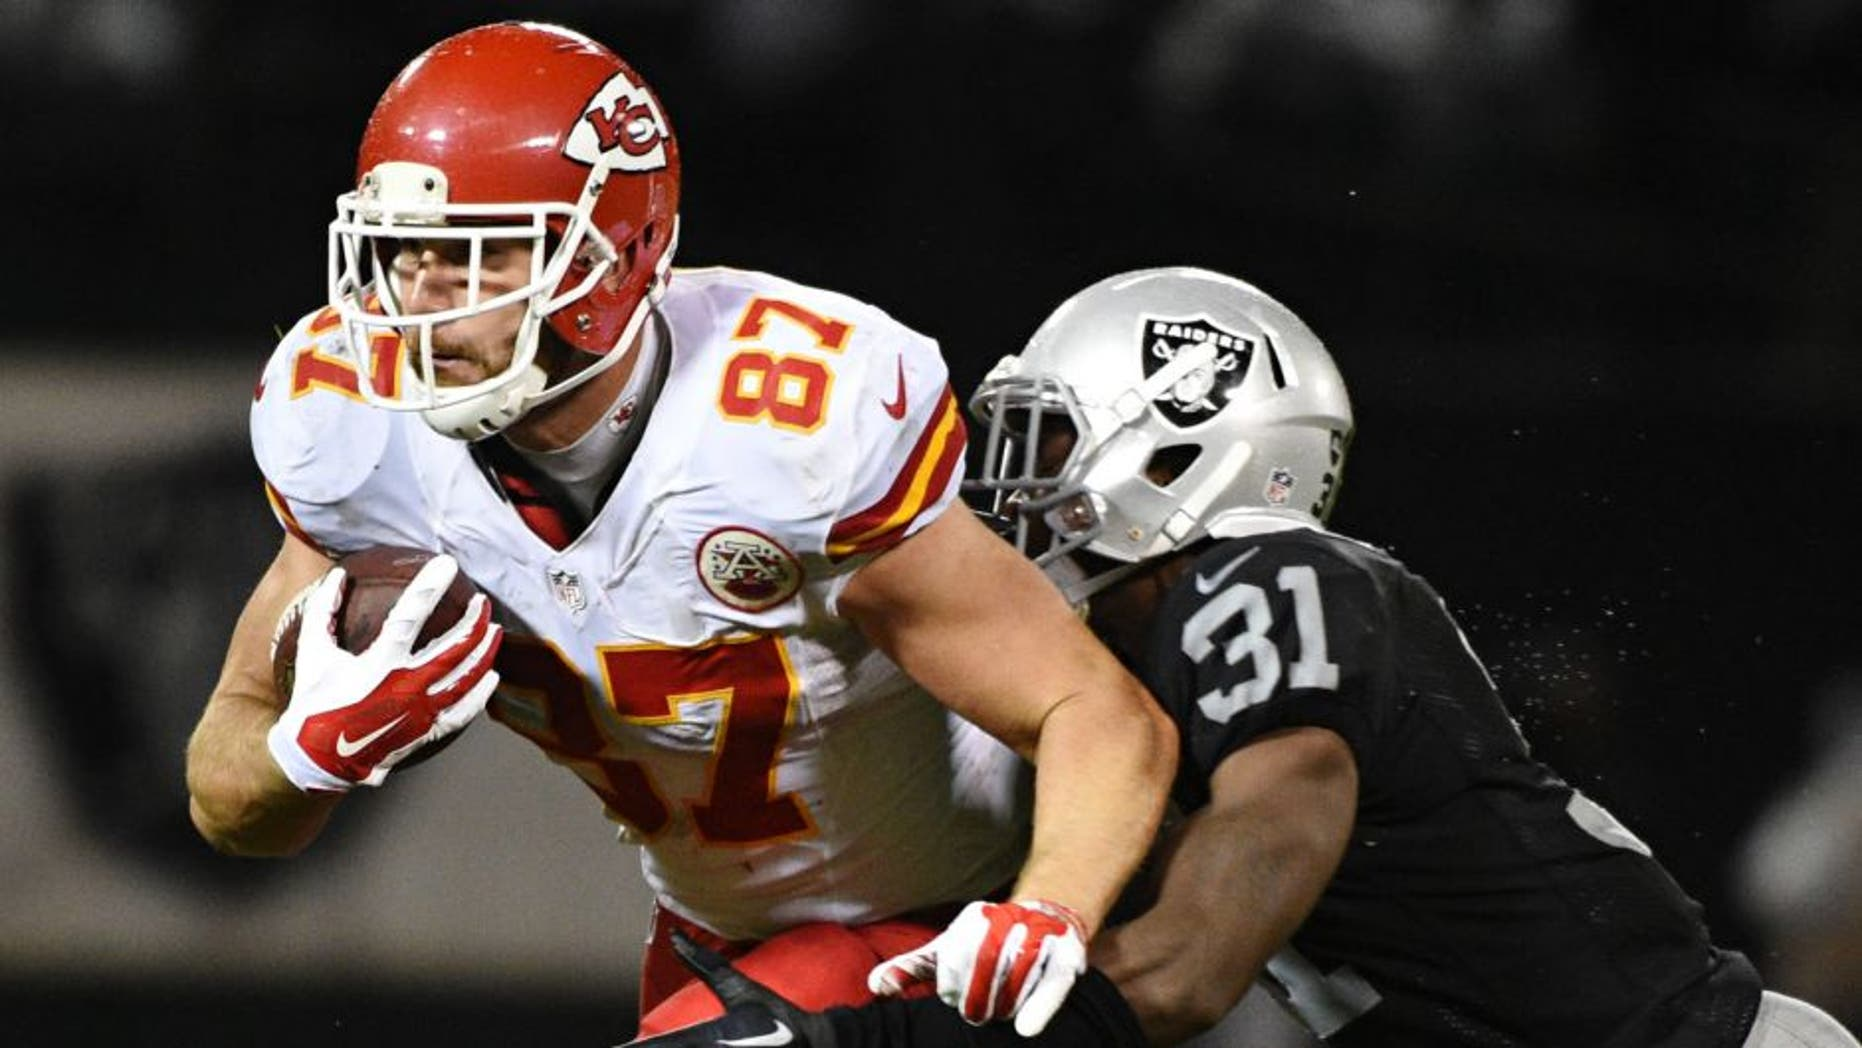 November 20, 2014; Oakland, CA, USA; Kansas City Chiefs tight end Travis Kelce (87) is tackled by Oakland Raiders defensive back Neiko Thorpe (31) during the third quarter at O.co Coliseum. The Raiders defeated the Chiefs 24-20. Mandatory Credit: Kyle Terada-USA TODAY Sports